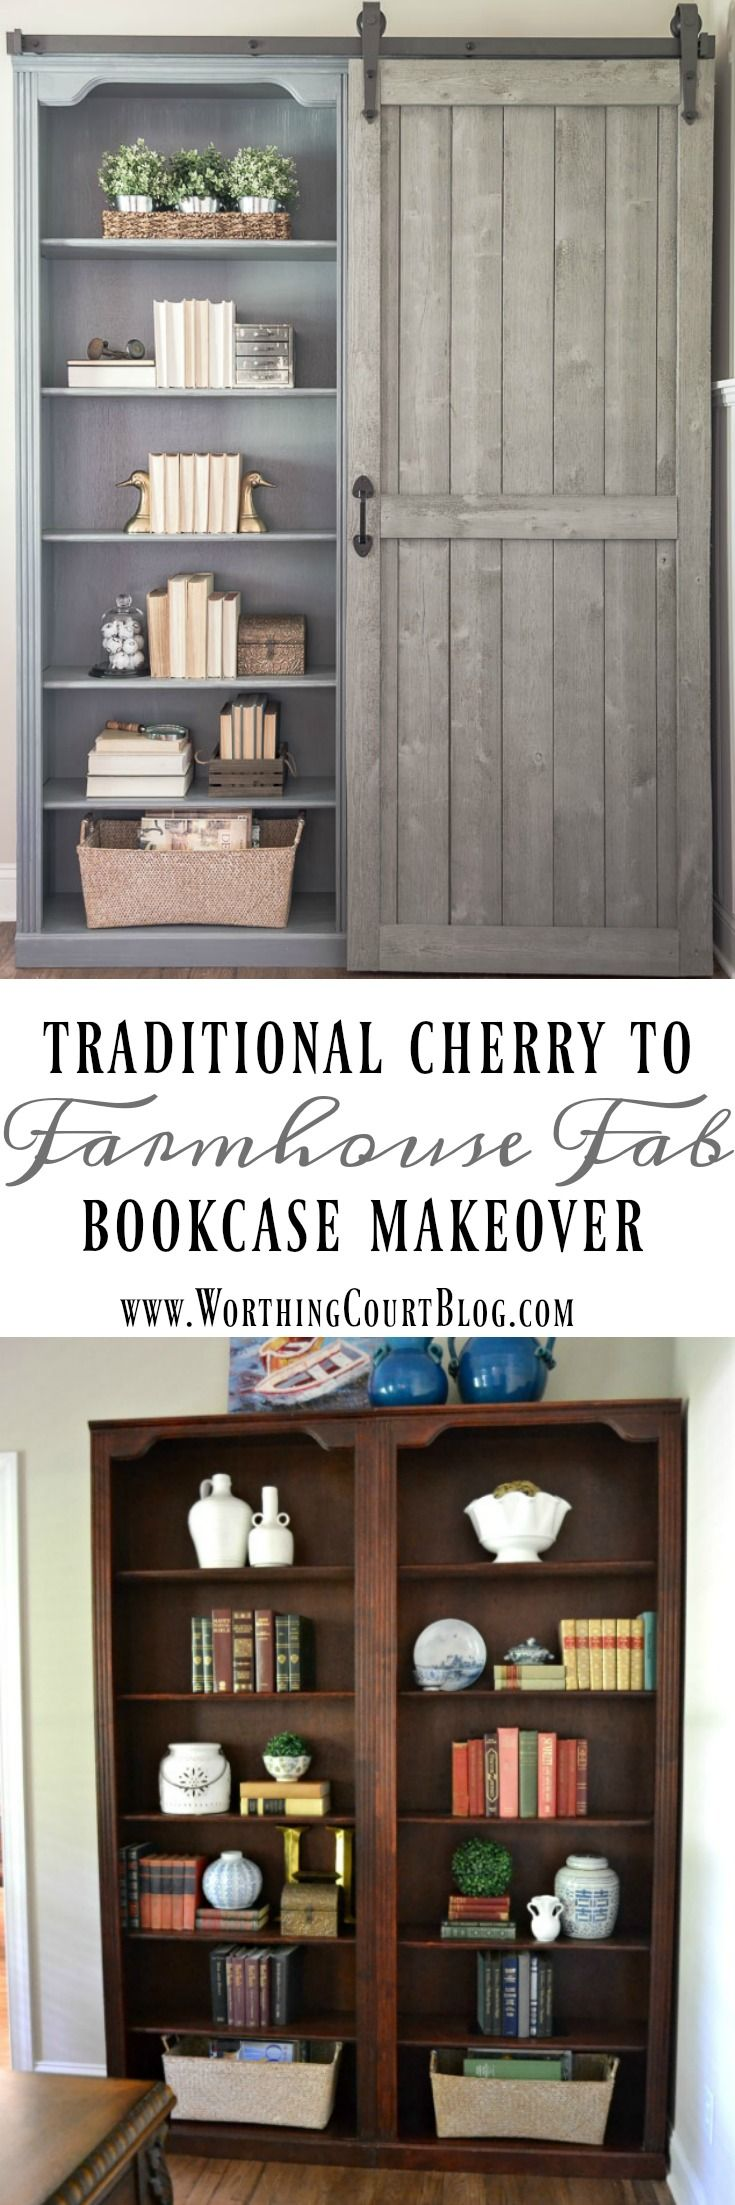 Traditional cherry bookcase makeover with a diy